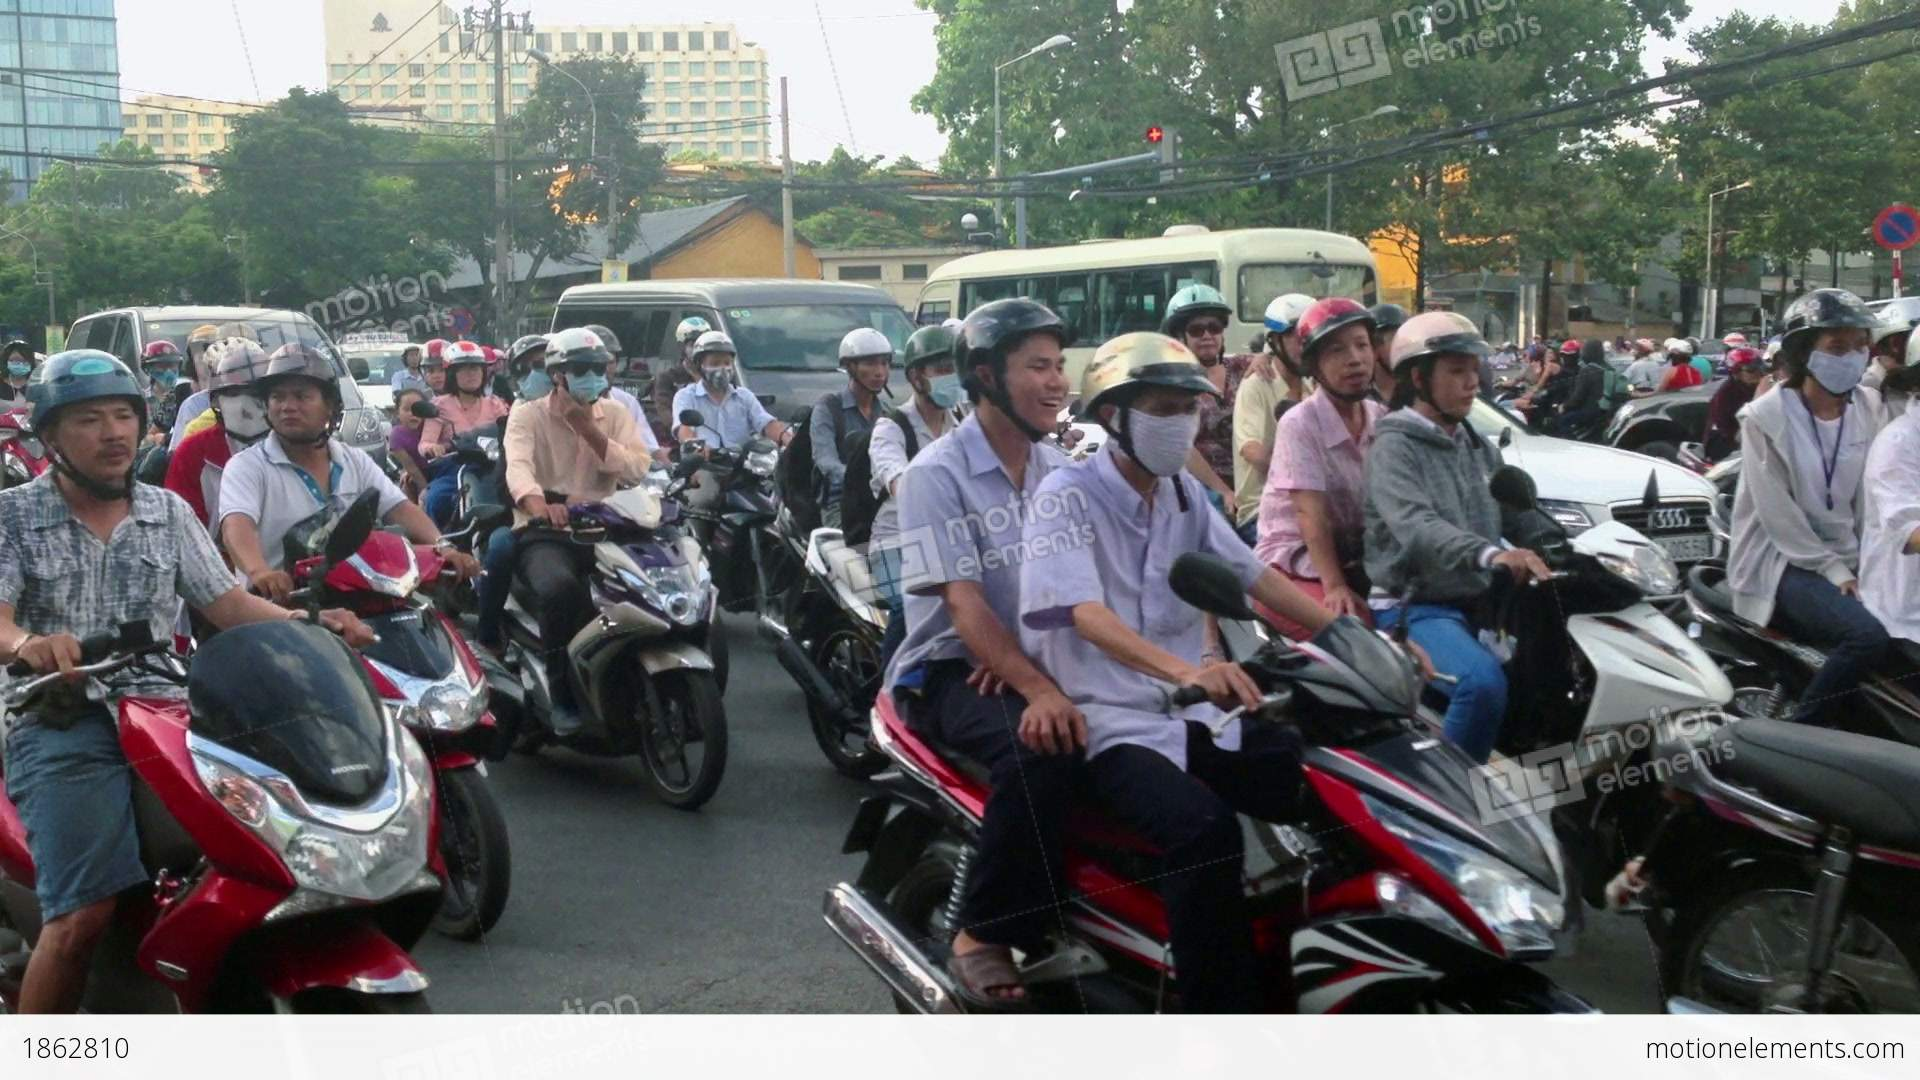 traffic in vietnam Latest travel advice for vietnam including safety and security if you're involved in a traffic accident you could face criminal charges and you may need to.